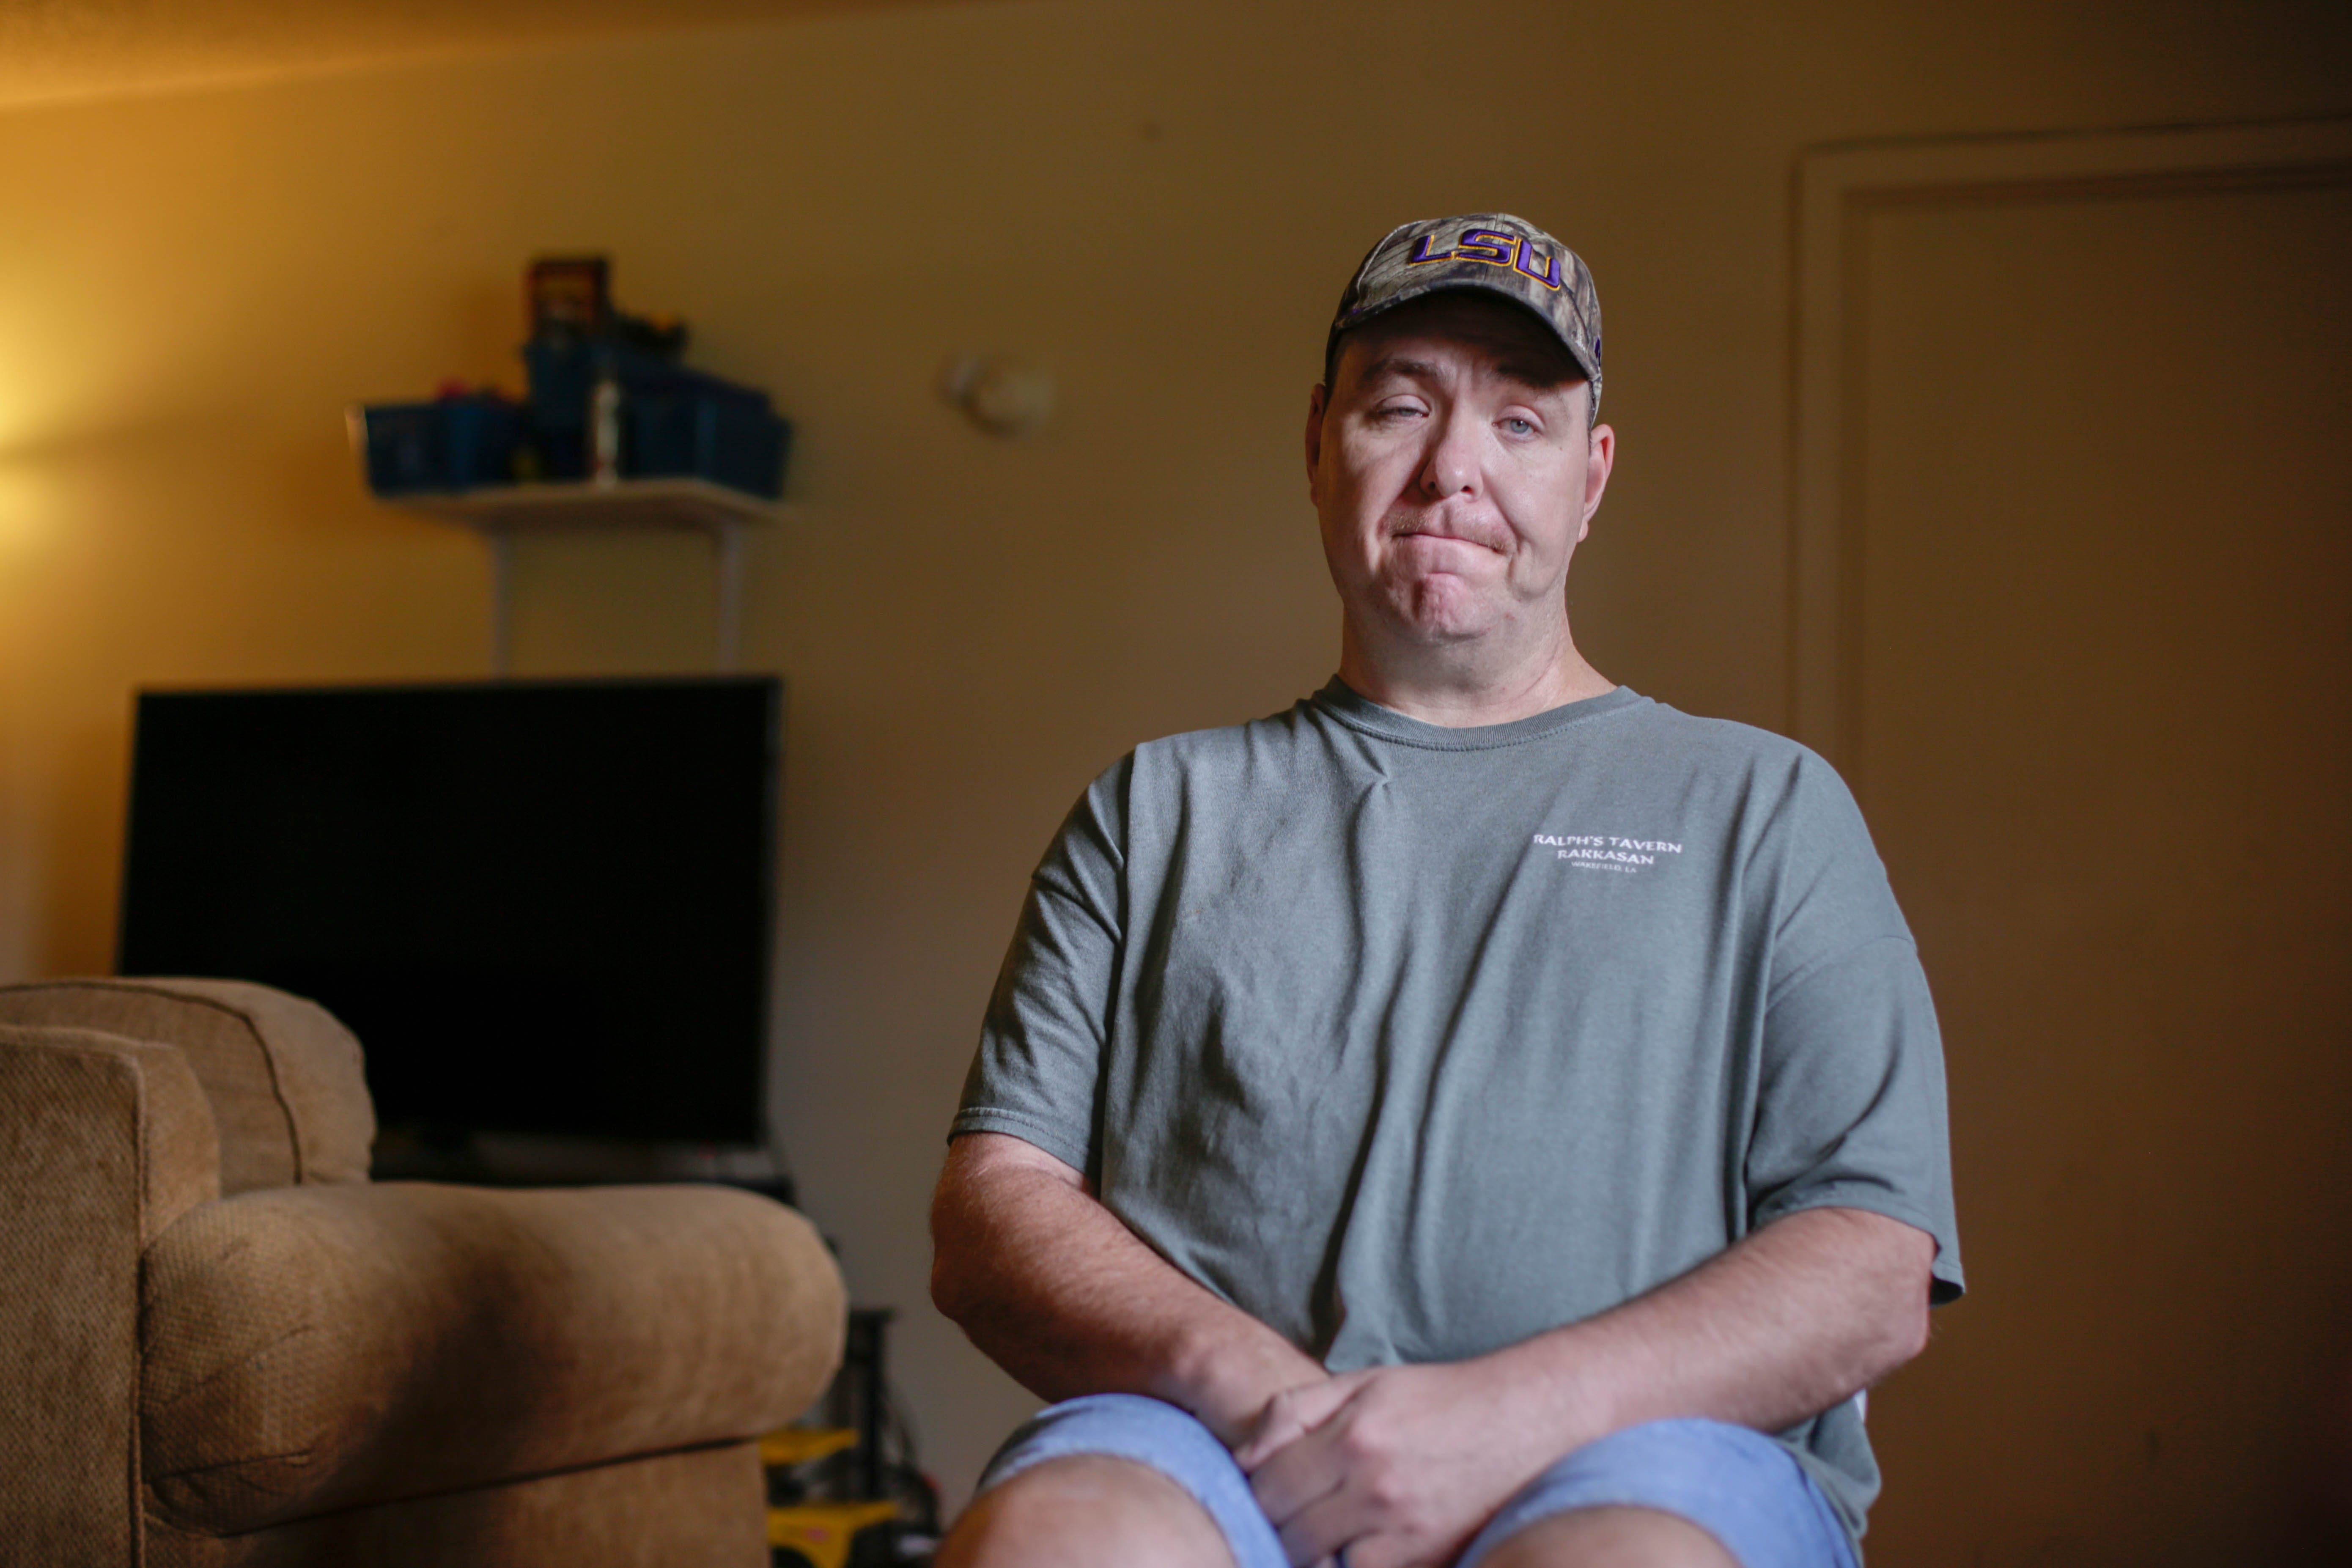 Sgt. Bryan Gaston recently left his job at Wilkinson County Correctional Facility in Woodville, Miss., because of what he and numerous others describe as abhorrent conditions. At Wilkinson, he said that prisoners threw waste on him numerous times and that reports of the incidents were never made, and there were no repercussions for such behavior.